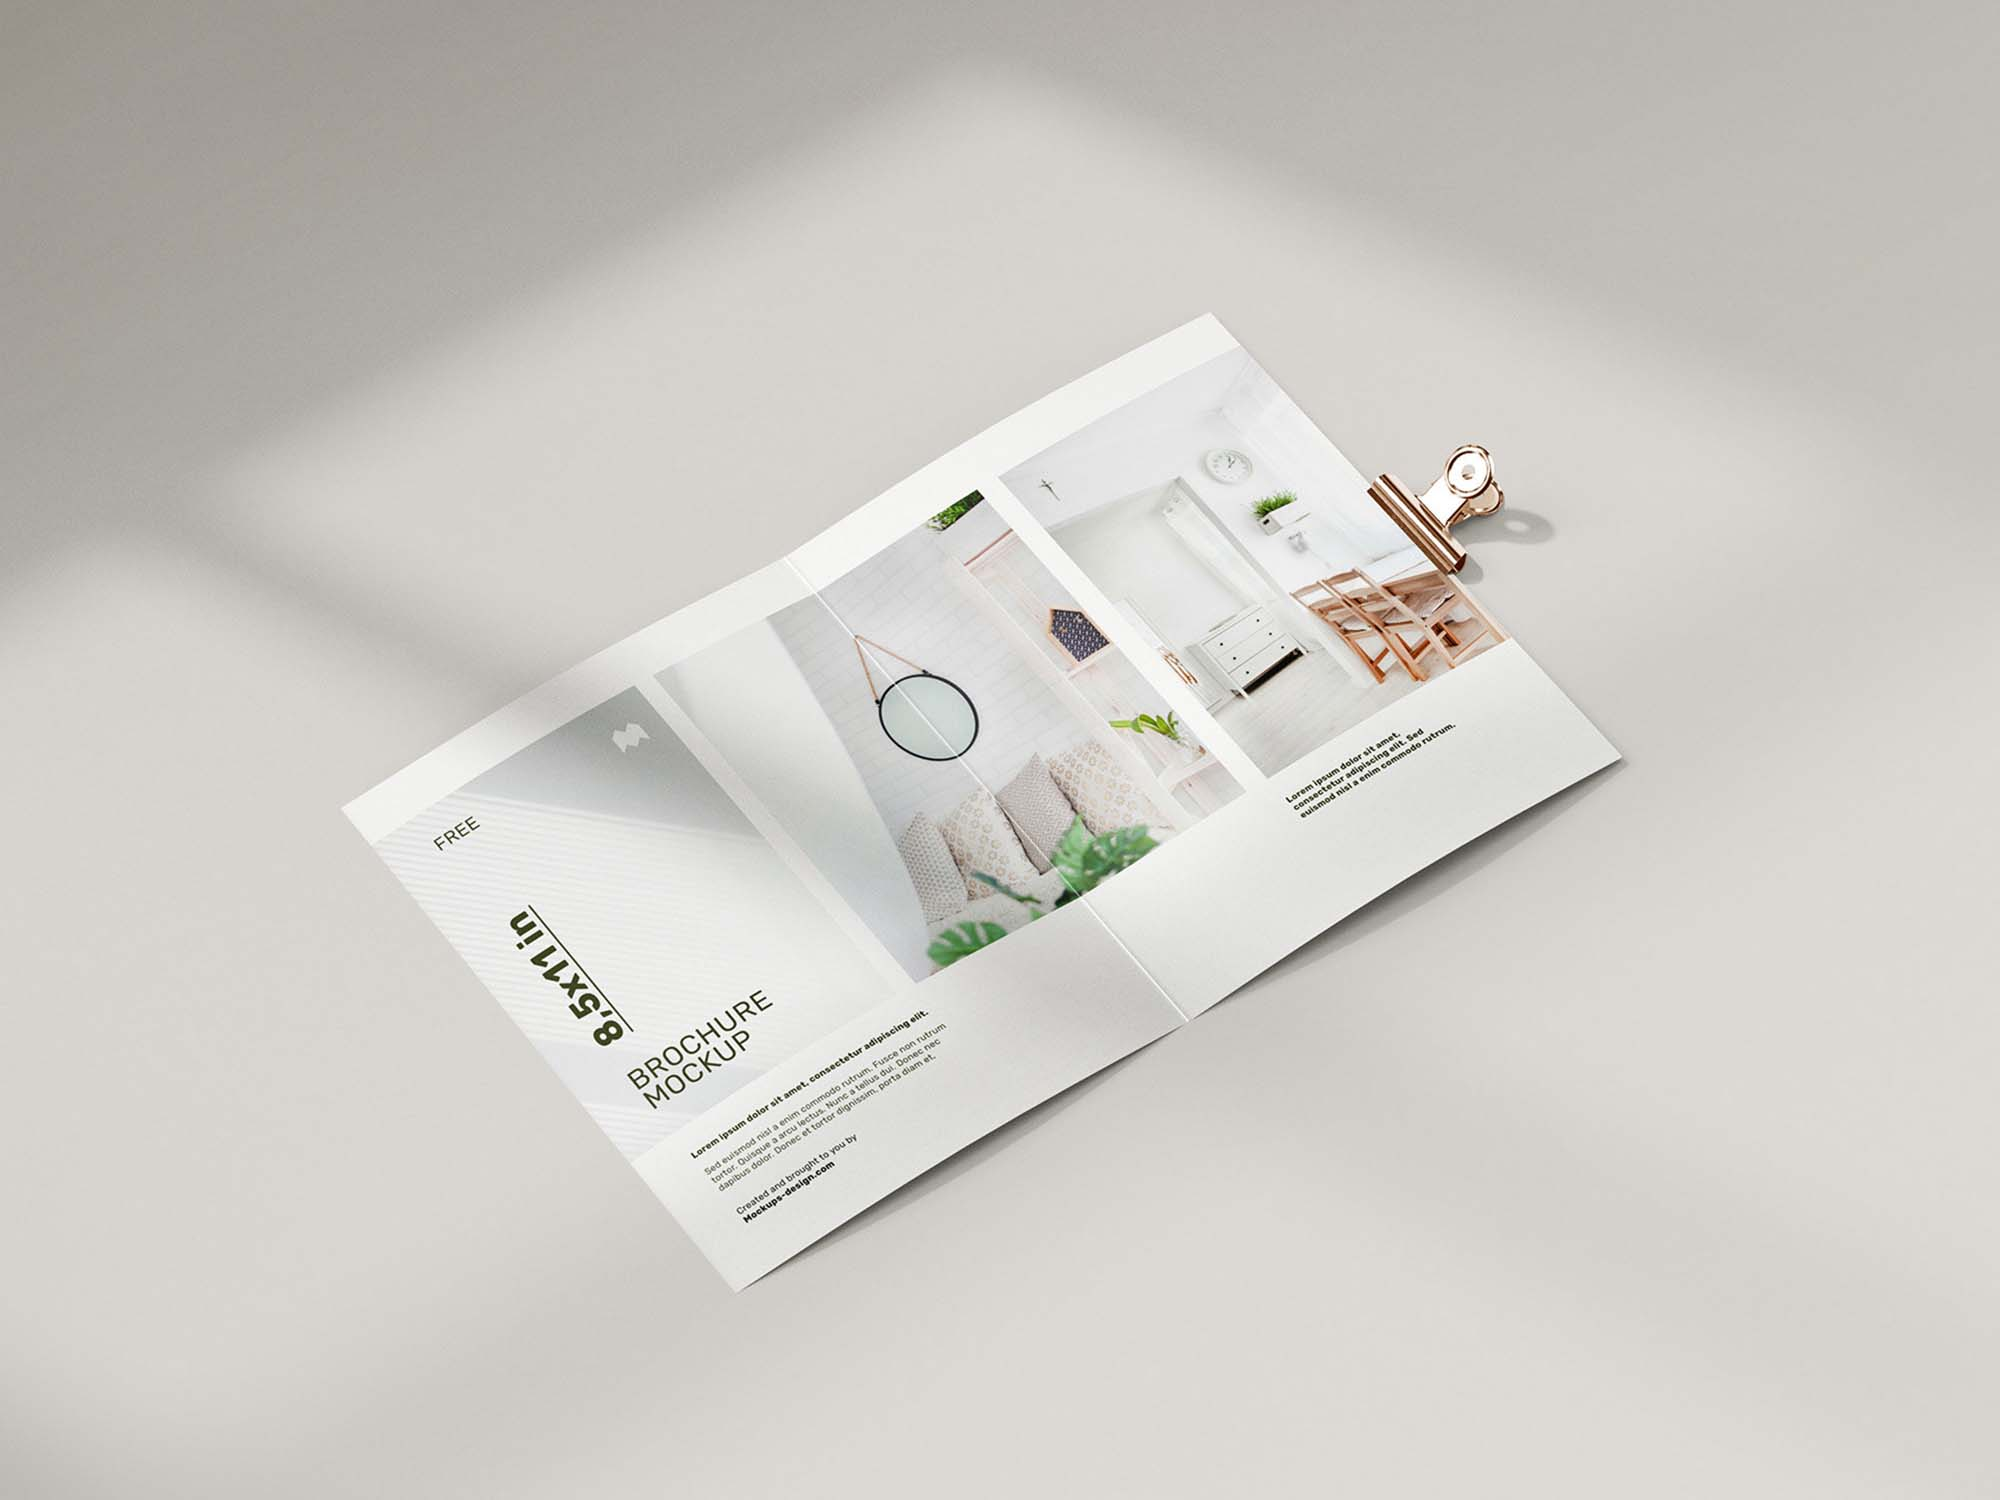 Folded 8.5 x 11 in Brochure Mockup 3